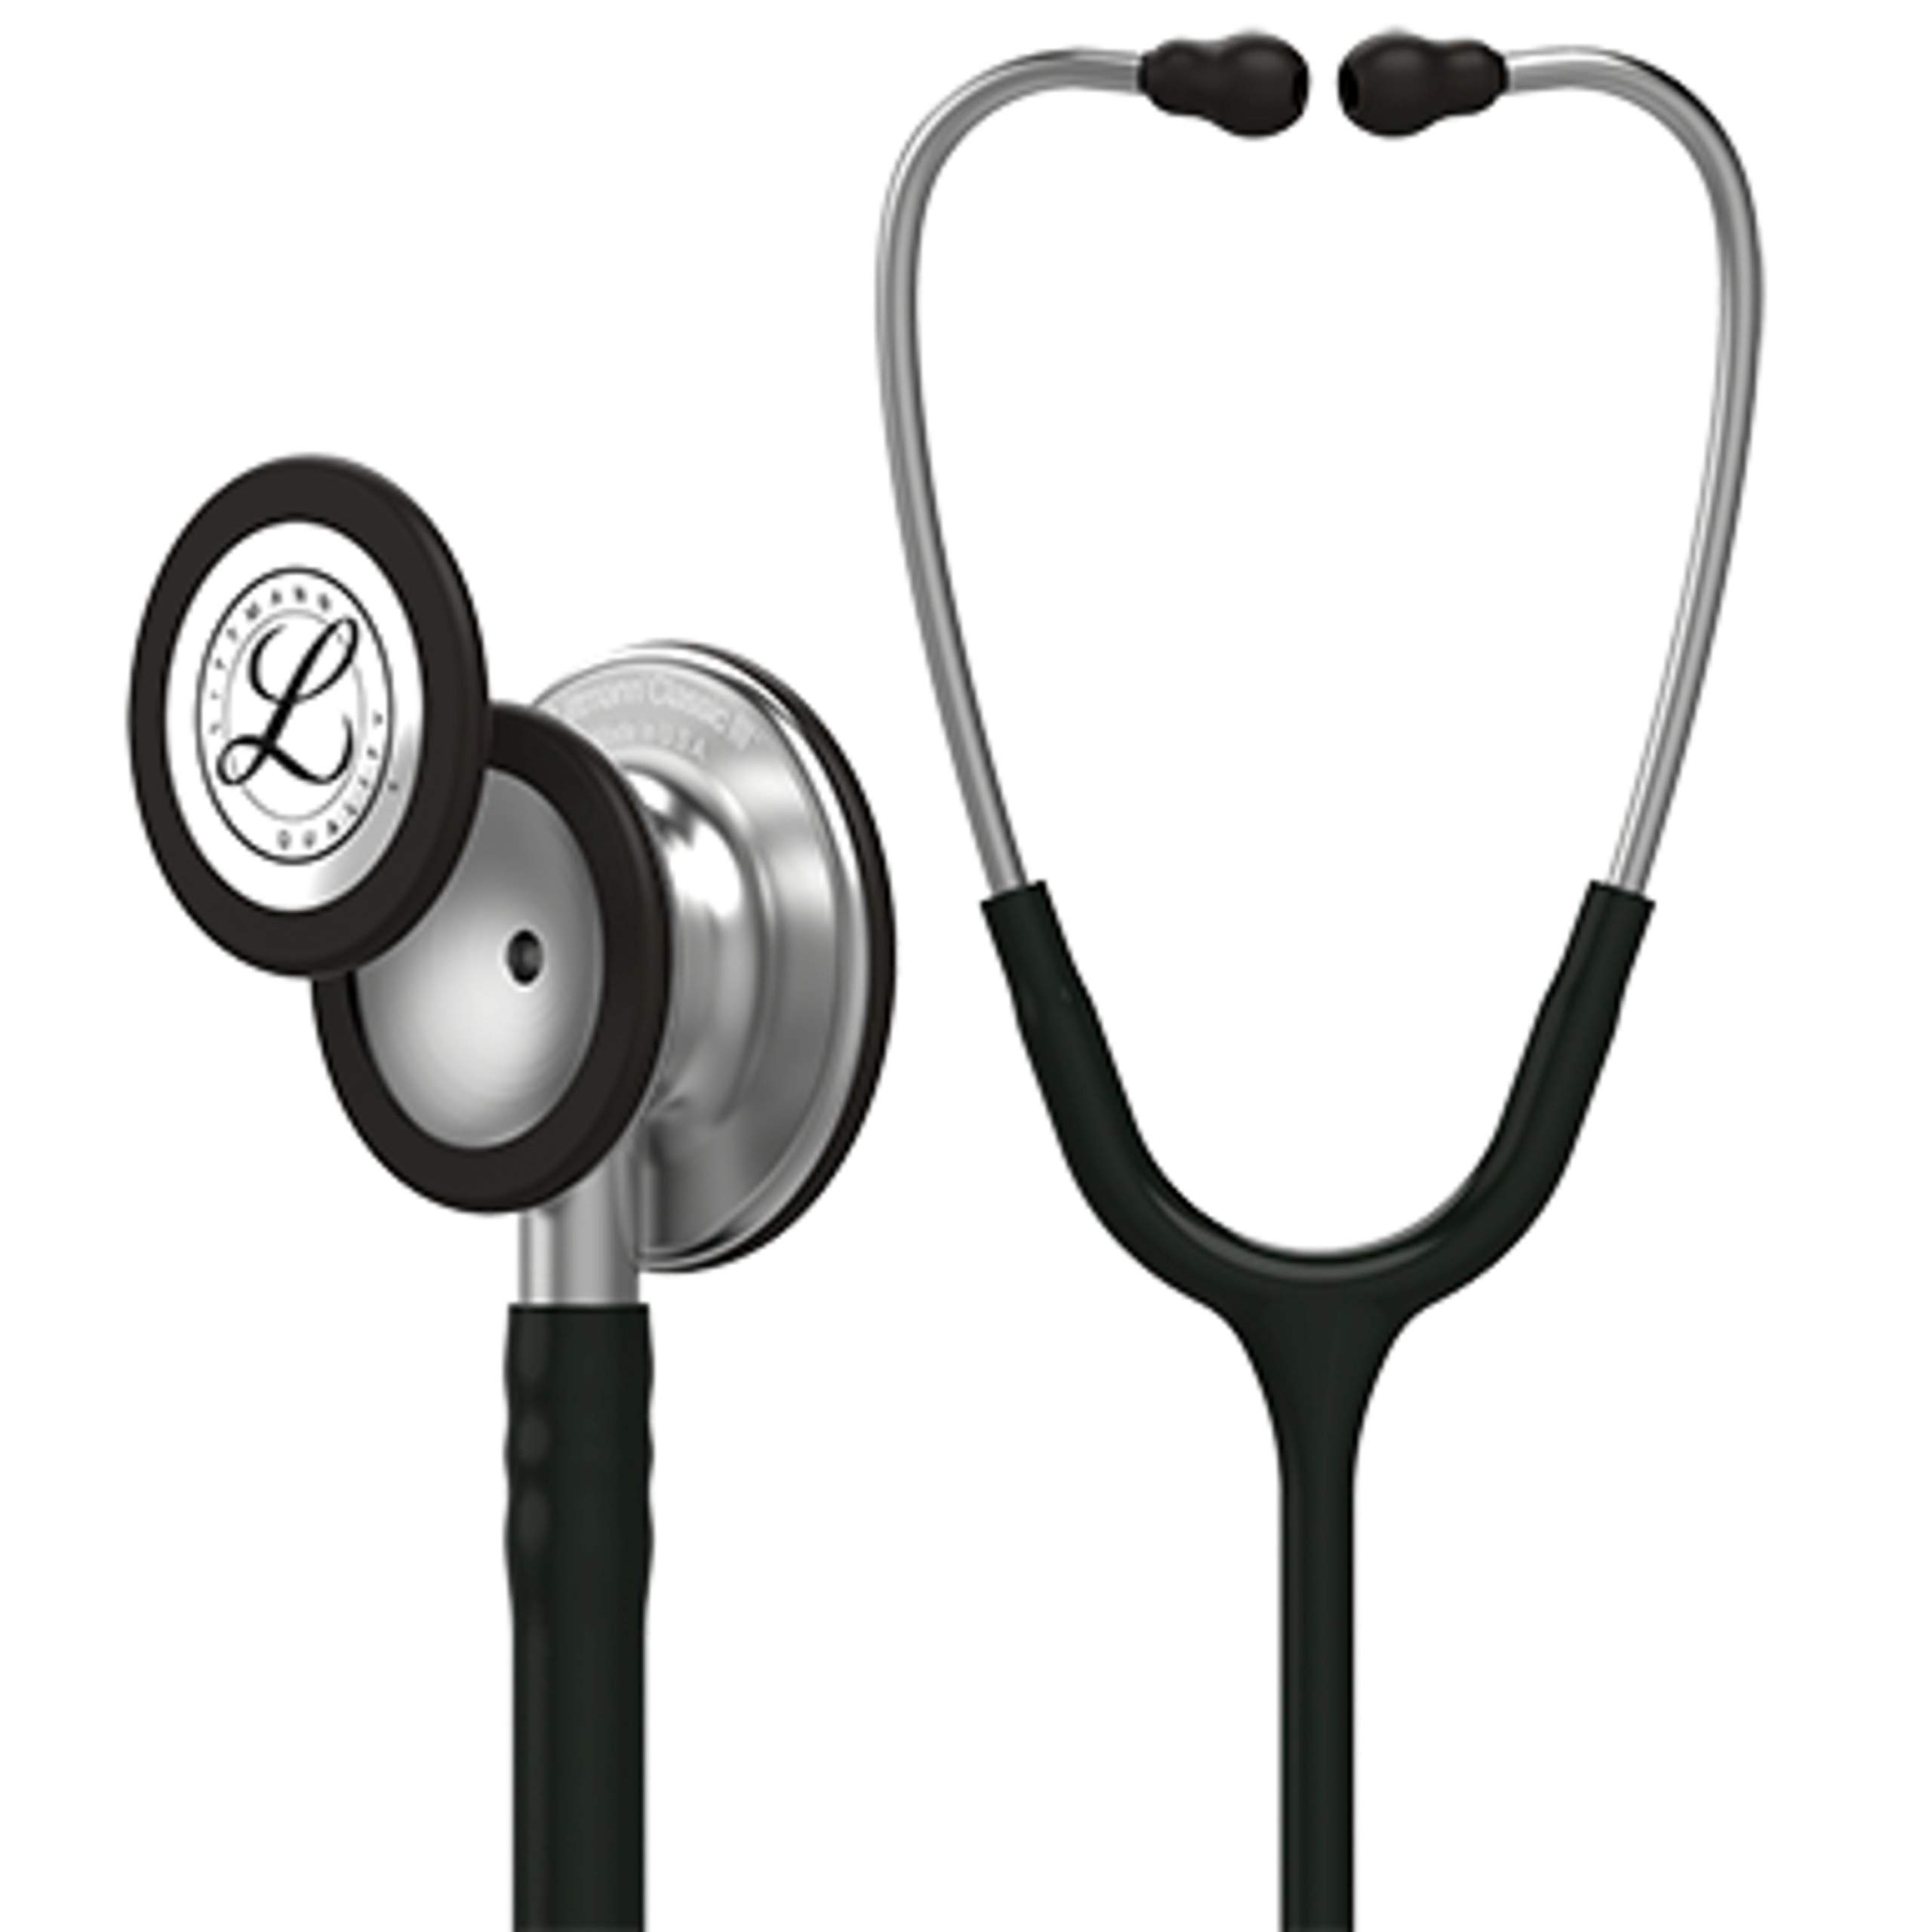 3M Littmann Classic III Monitoring Stethoscope, Black Tube, 27 inch, 5620